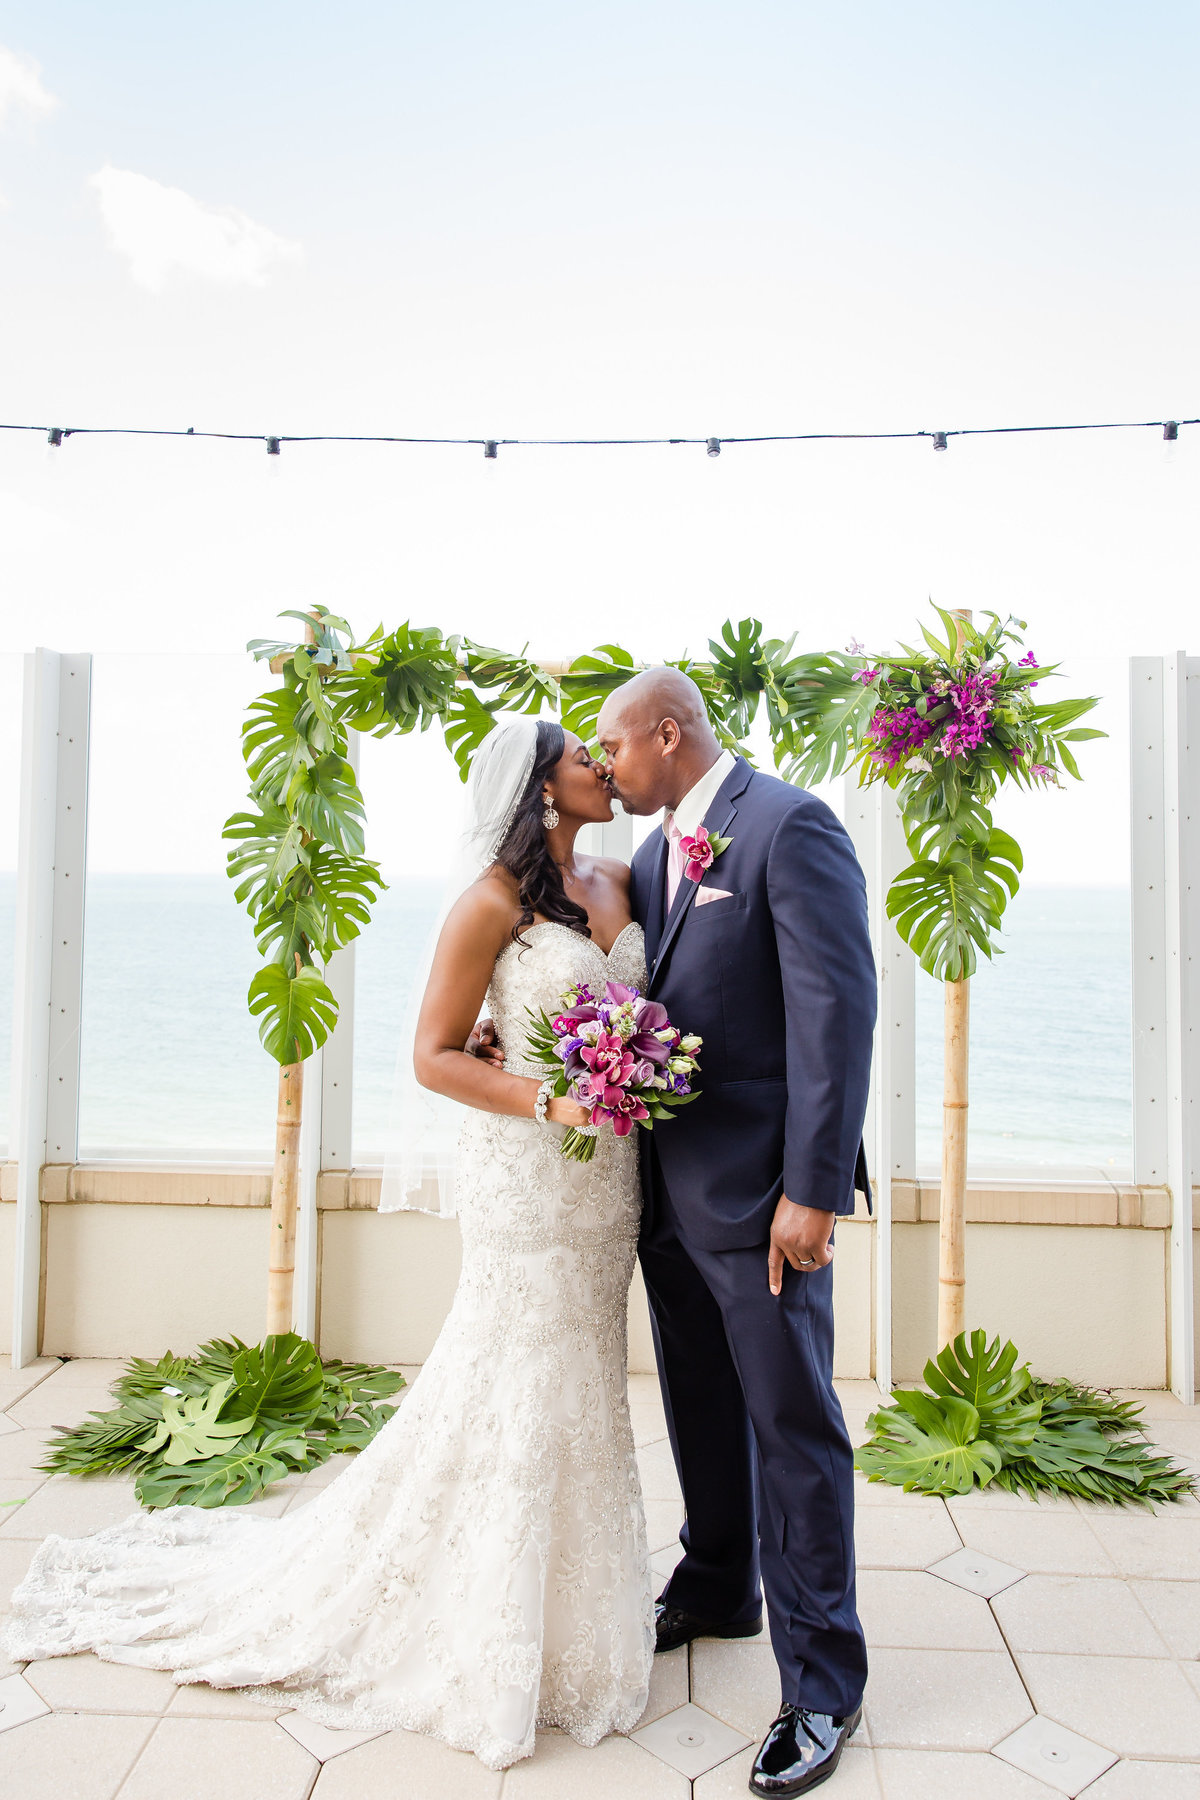 OceanaireWeddingbyDaissyTorresPhotography-104